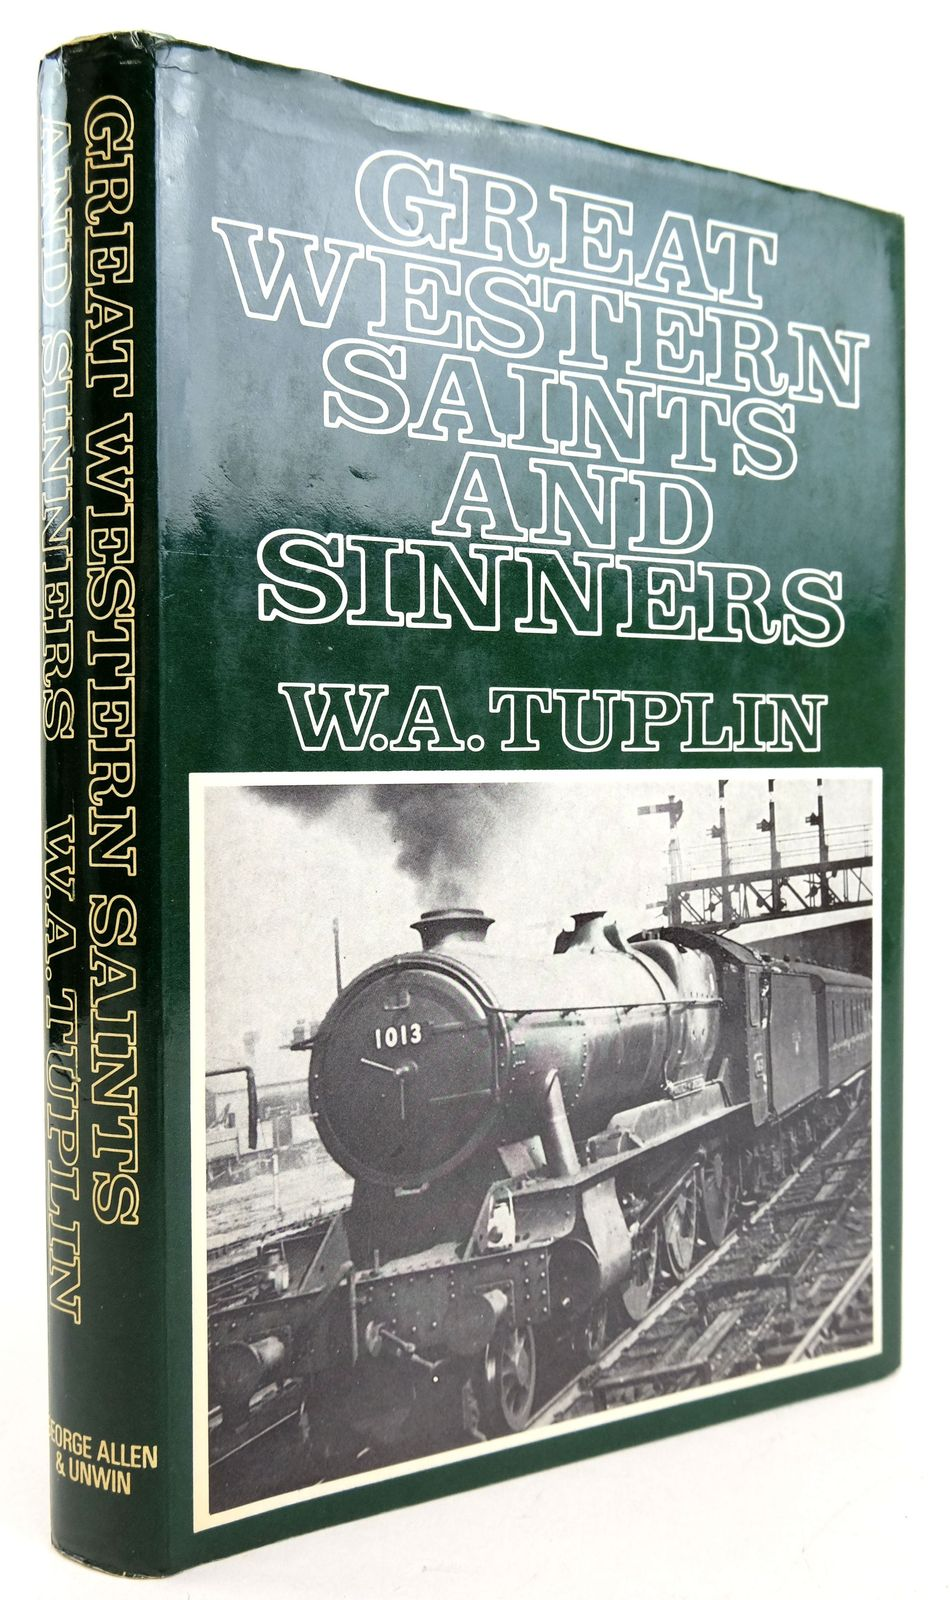 Photo of GREAT WESTERN SAINTS AND SINNERS written by Tuplin, W.A. published by George Allen & Unwin (STOCK CODE: 1819889)  for sale by Stella & Rose's Books